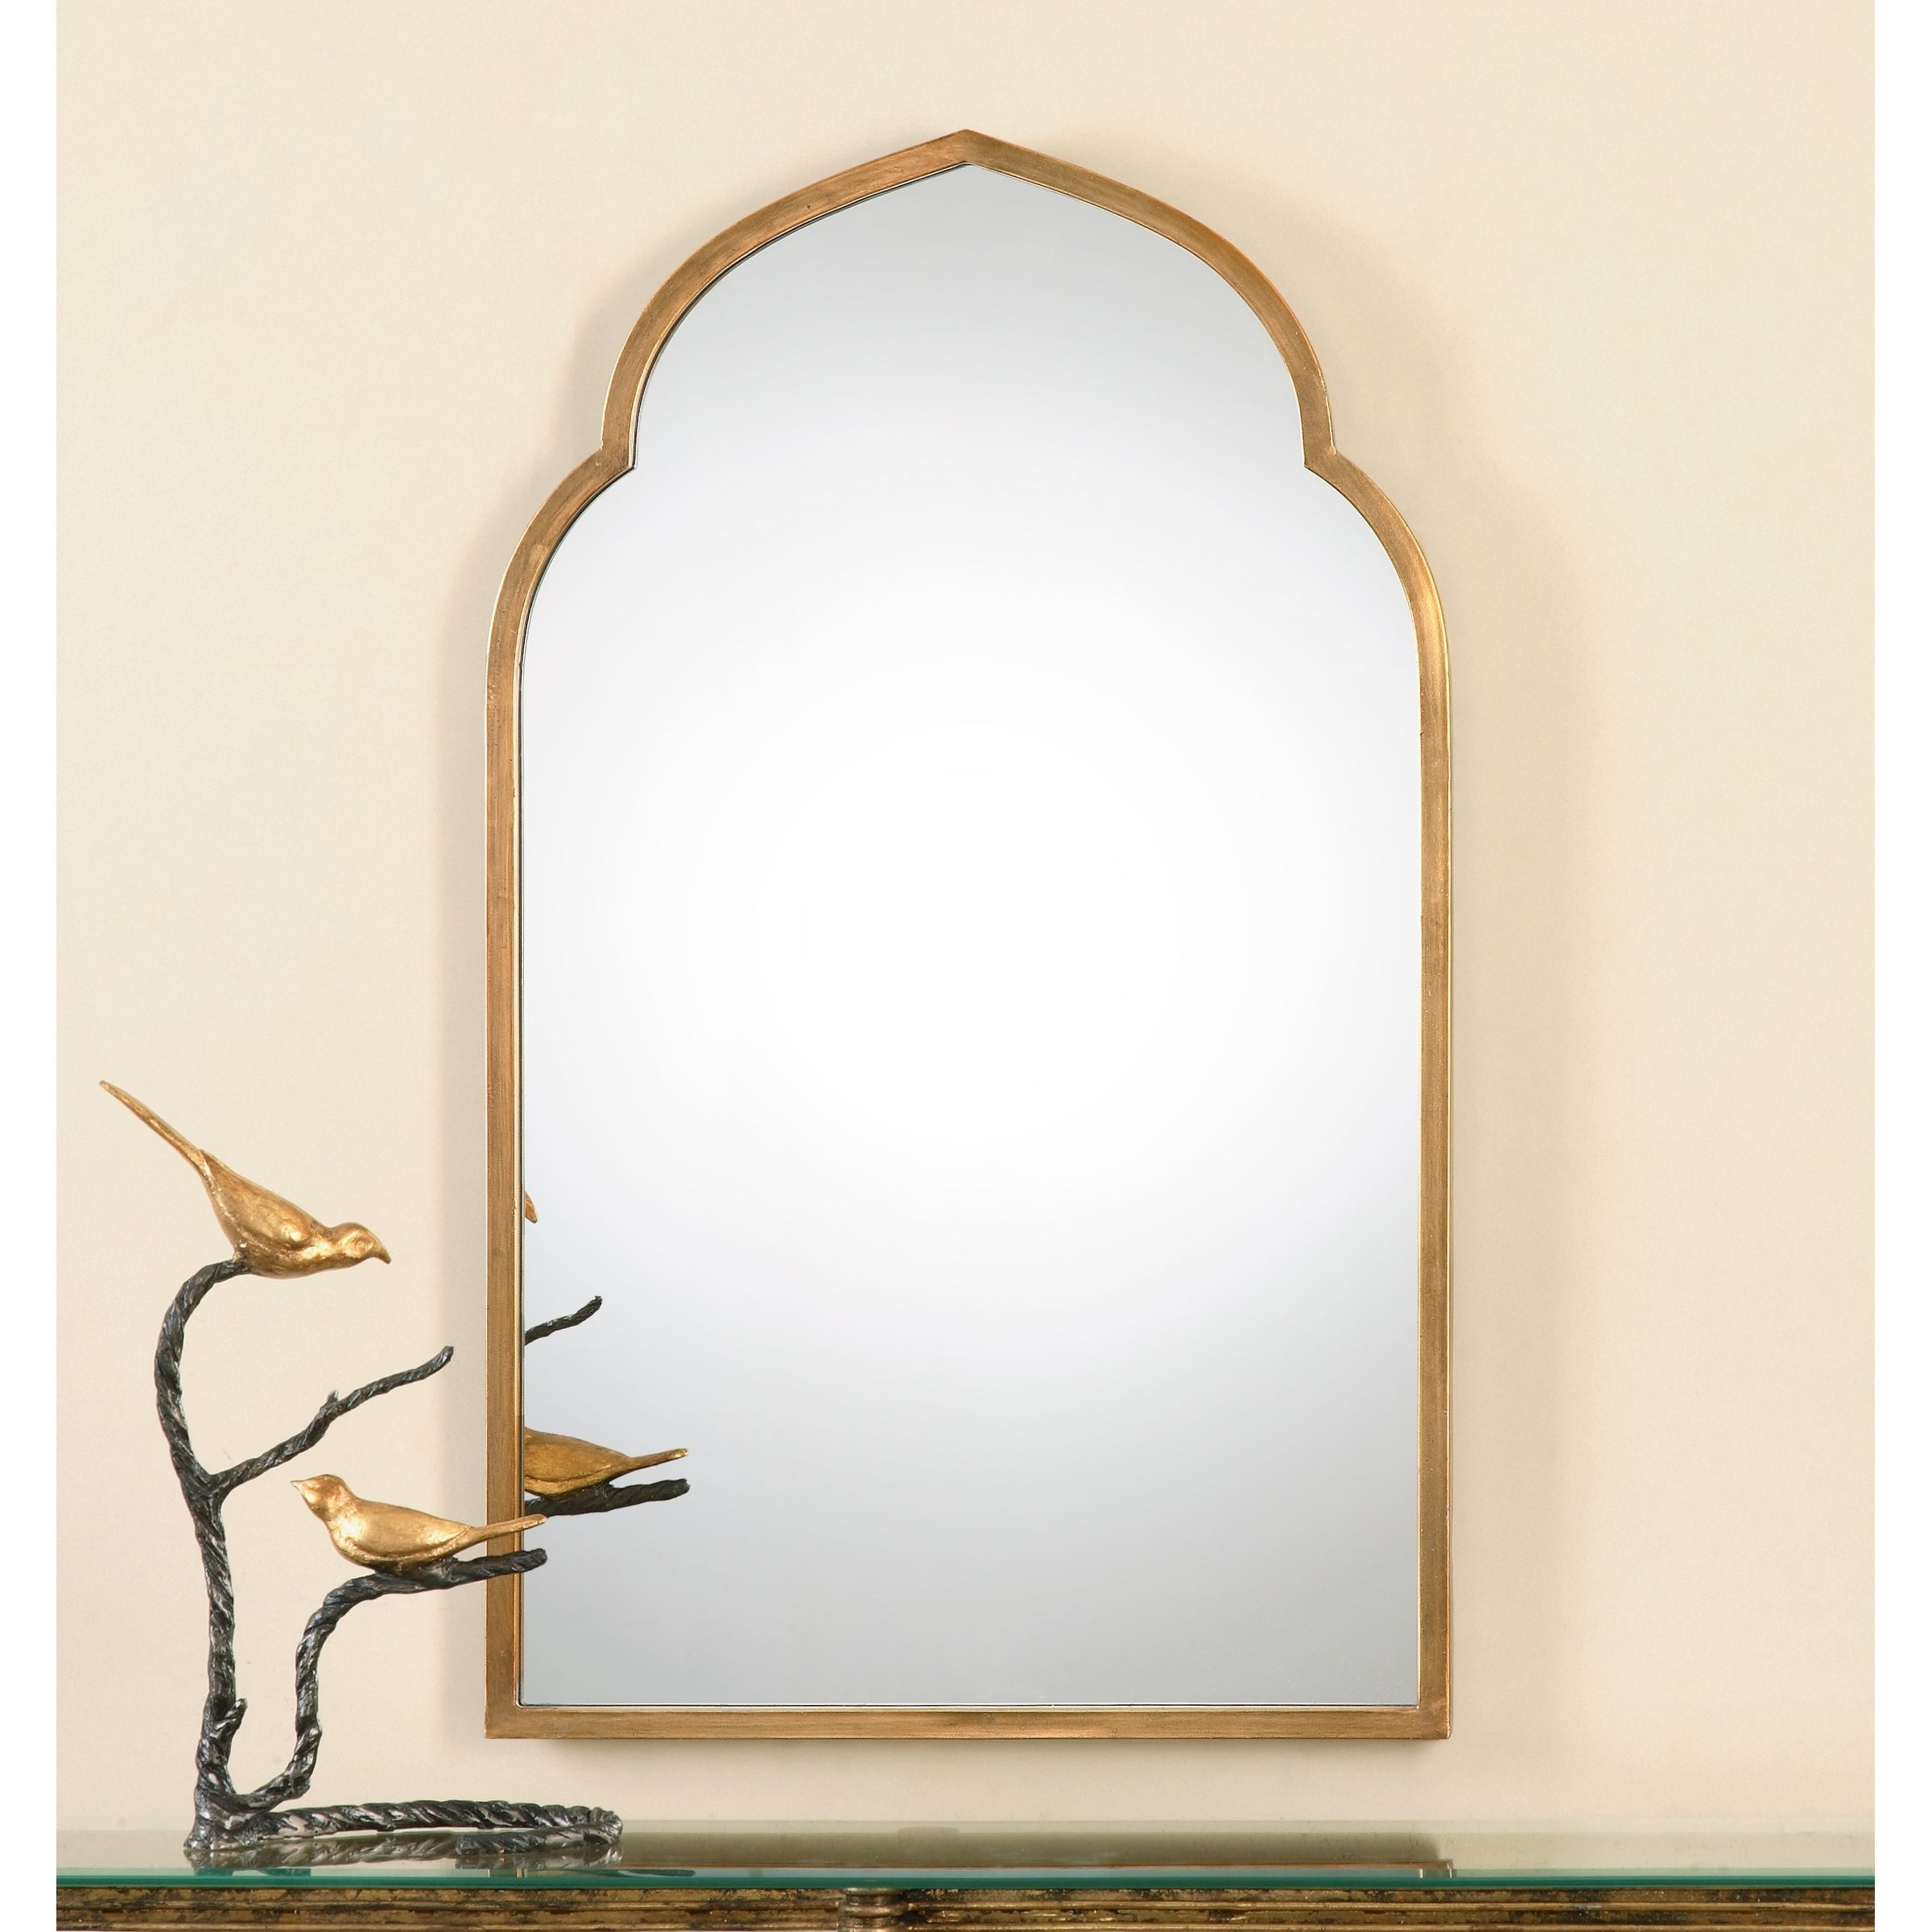 Uttermost Kenitra Gold Arch Decorative Wall Mirror - Antique Silver -  24X40X1.125 throughout Arch Vertical Wall Mirrors (Image 26 of 30)